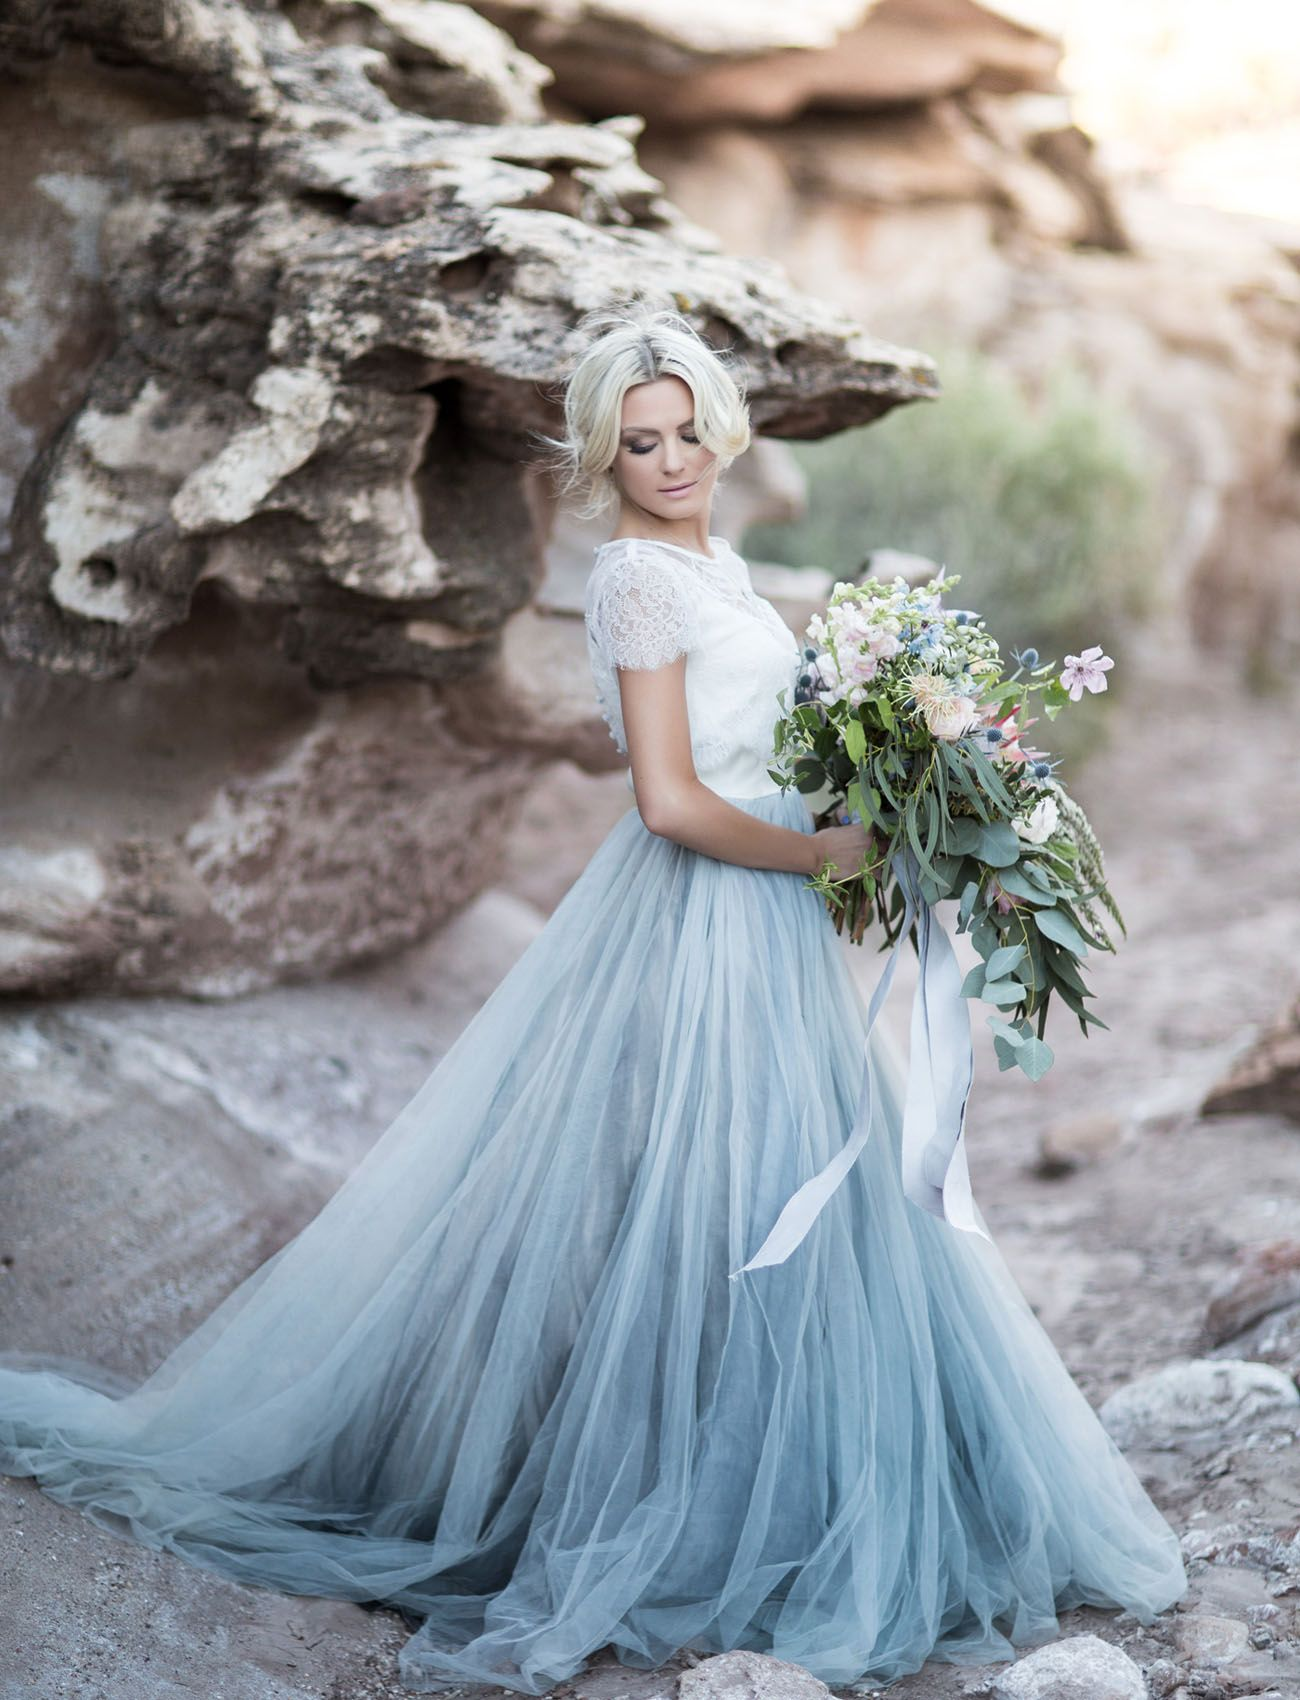 Desert Wedding Inspiration at Zion National Park | Pinterest | Blue ...